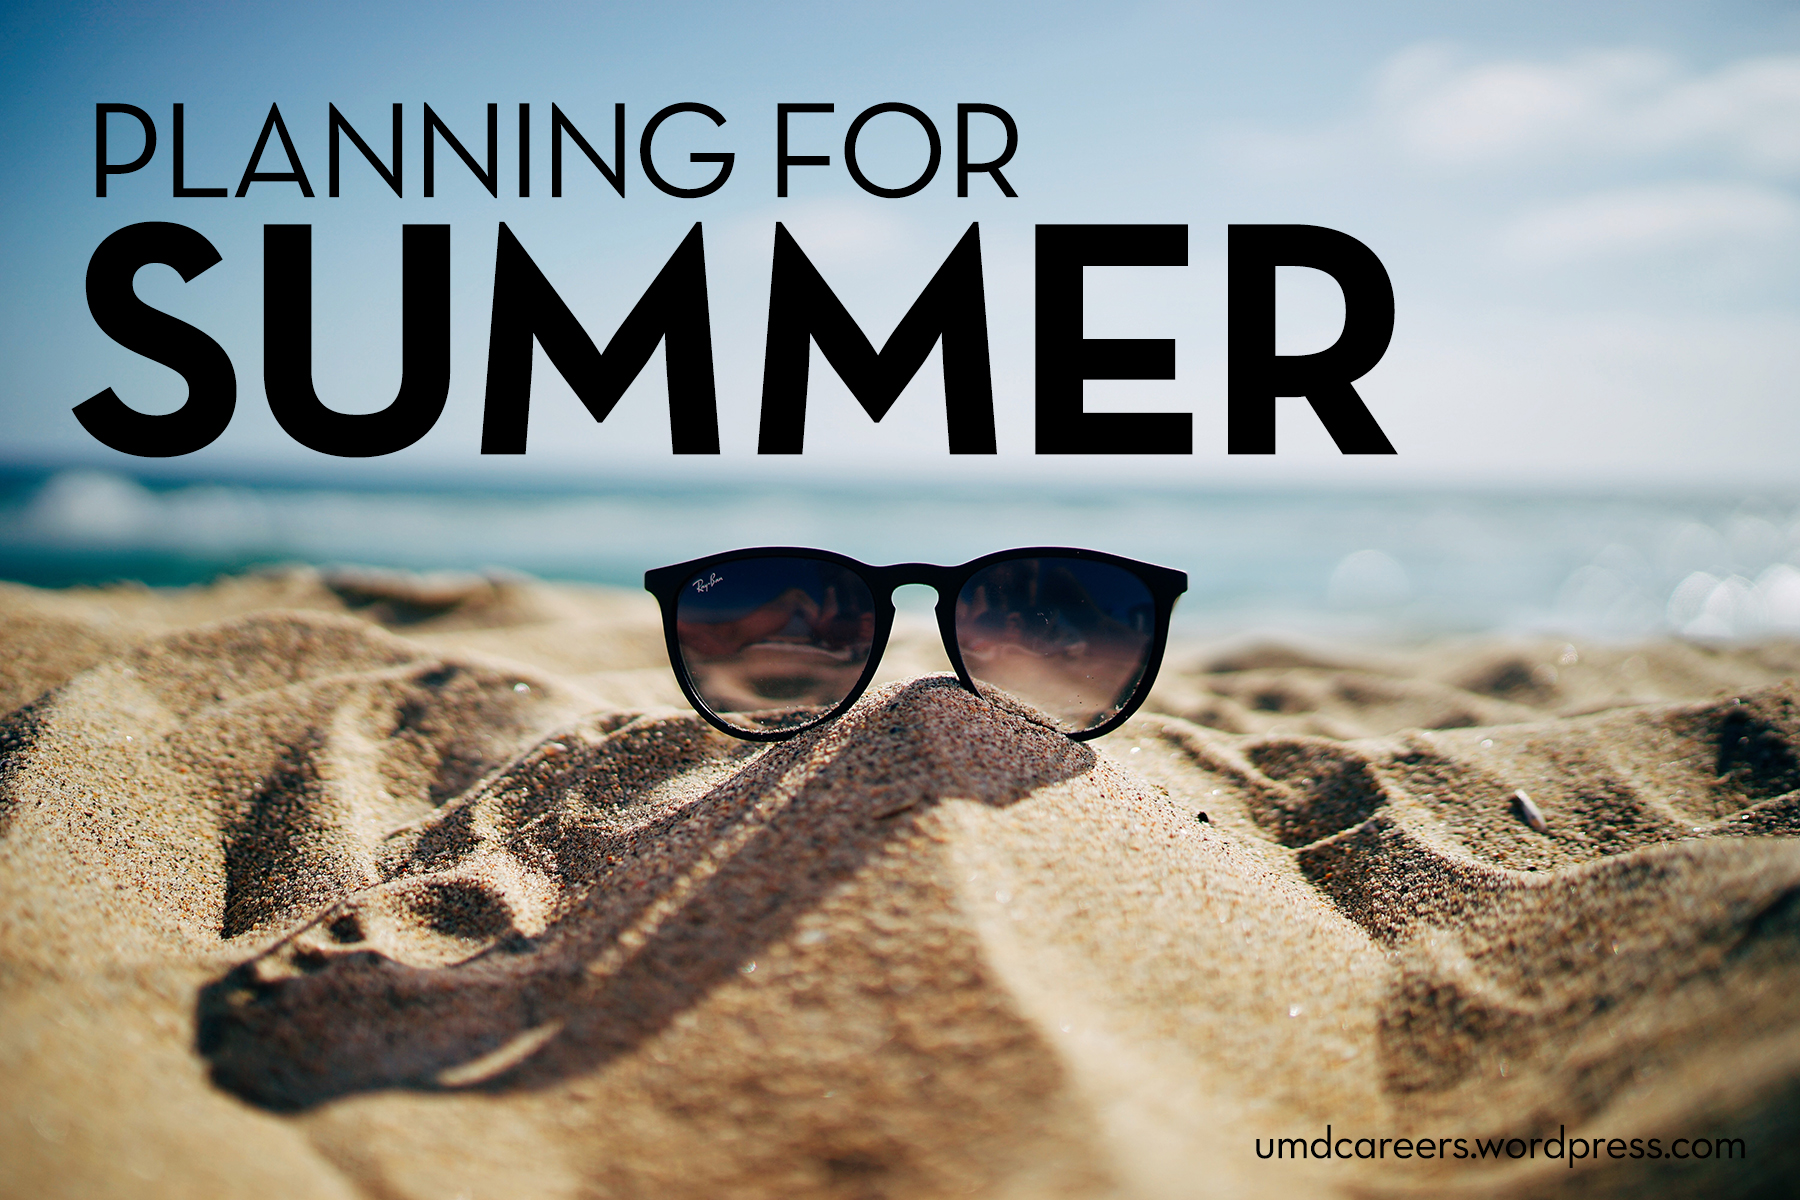 Image: black sunglasses on beach sand with water in background Text: Planning for Summer